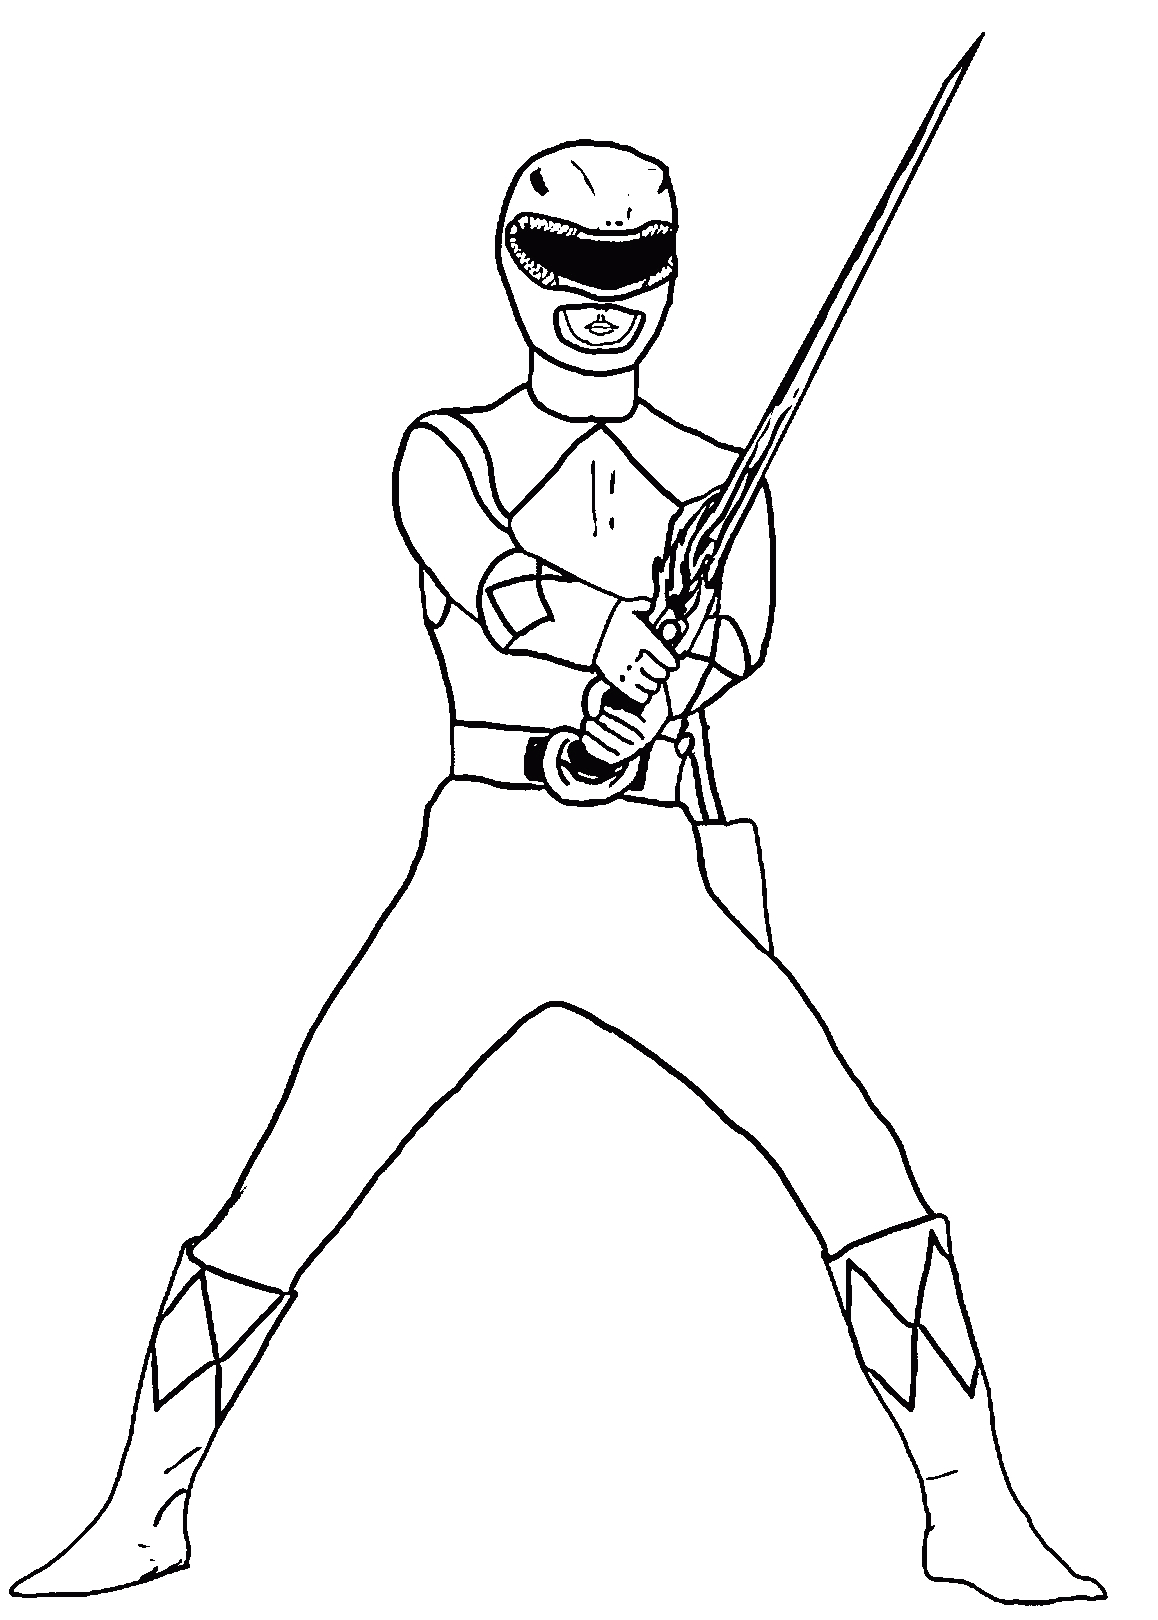 power ranger coloring pages power rangers coloring pages printable page for kids legendary